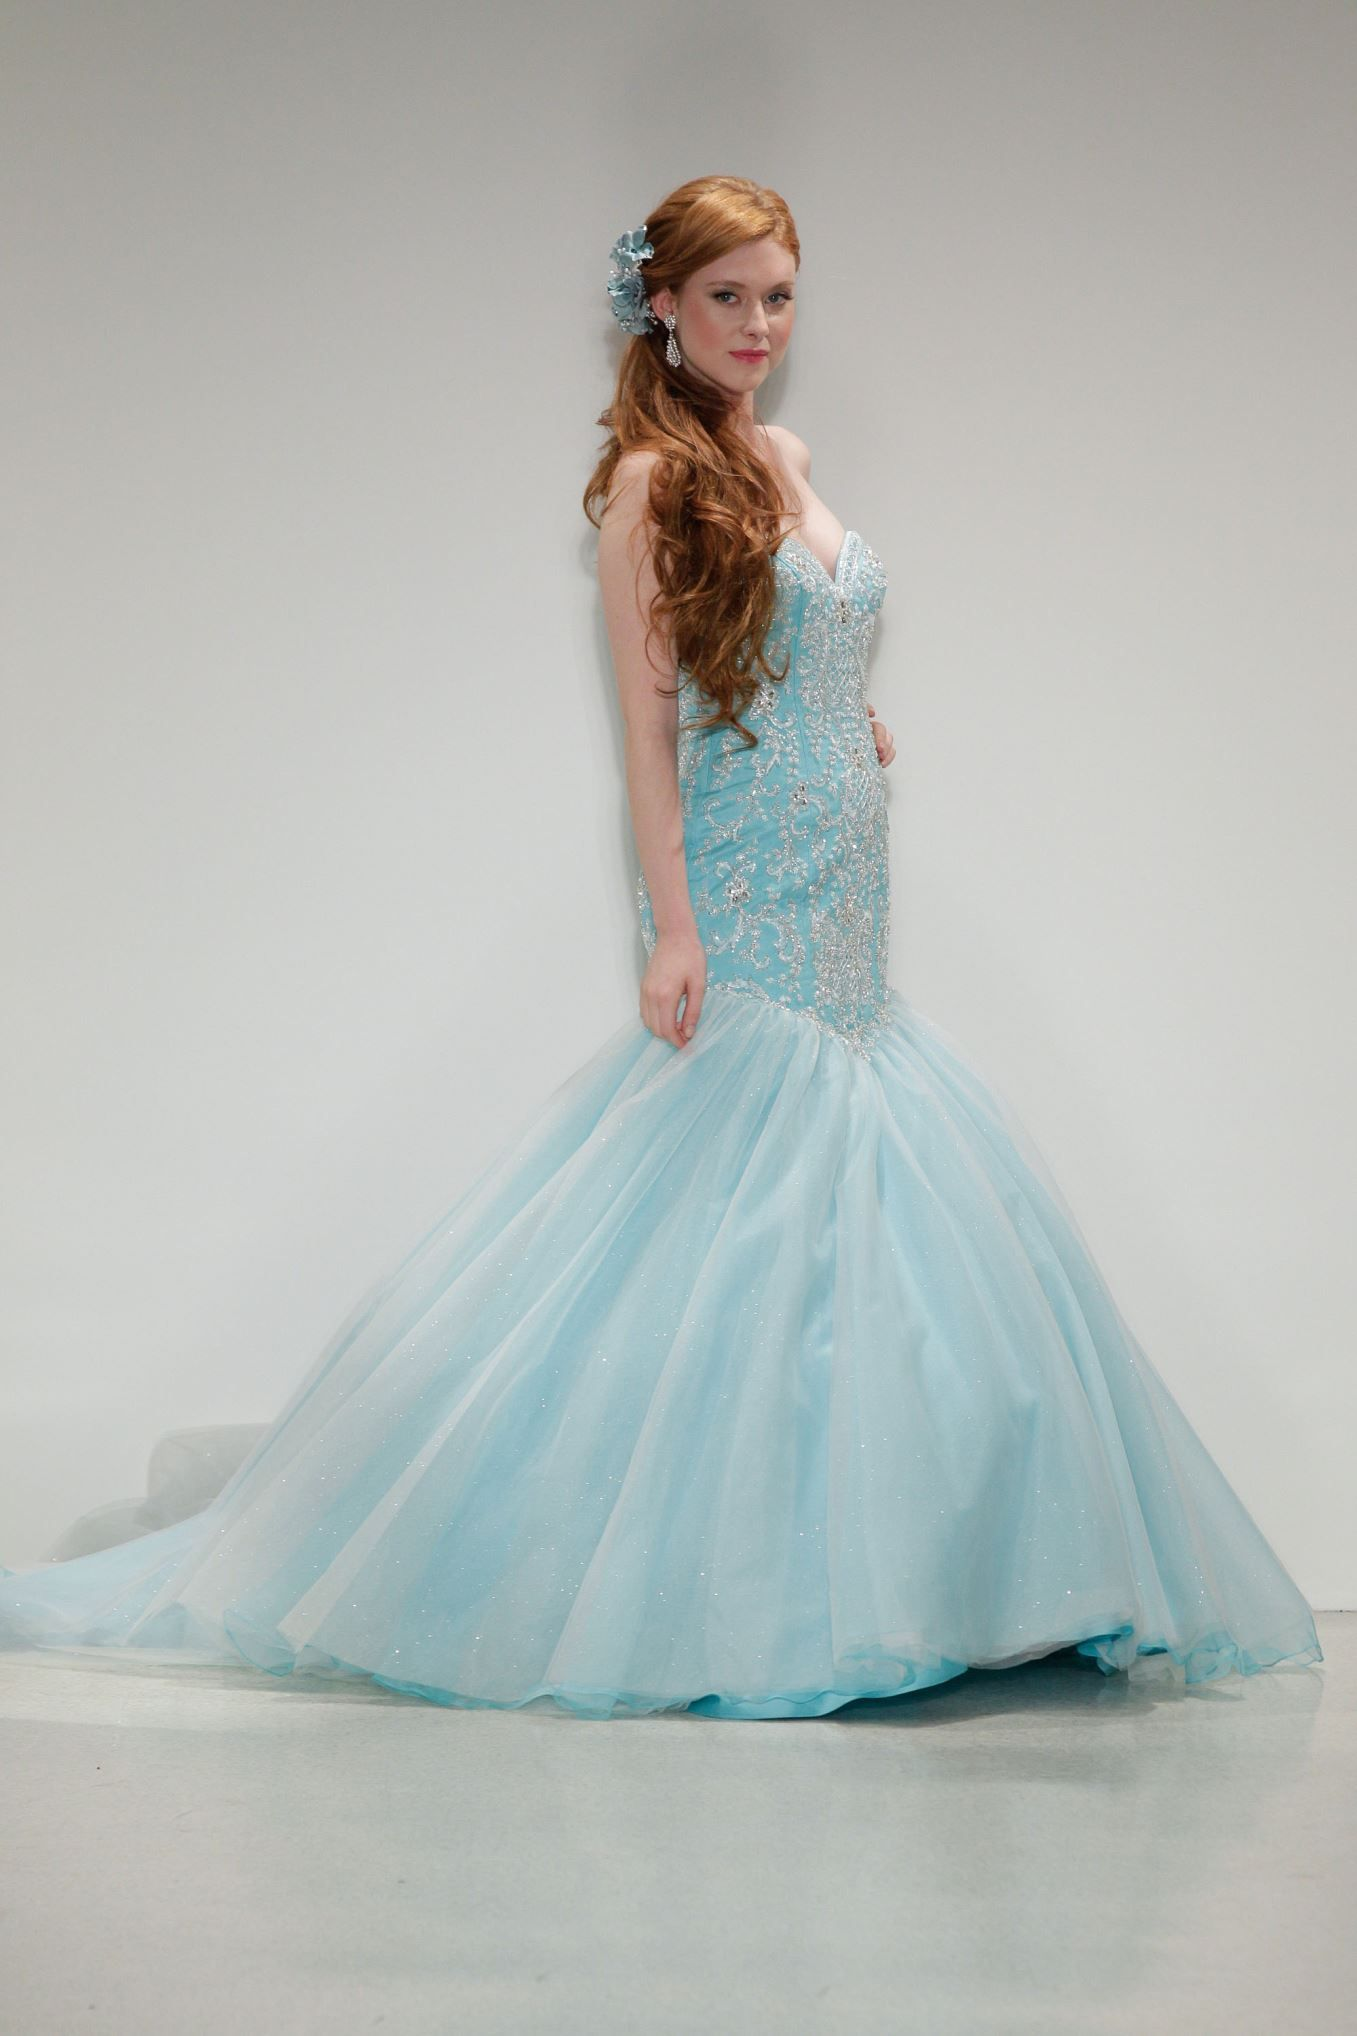 Wedding dresses inspired by Disney princesses | wedding dresses ...